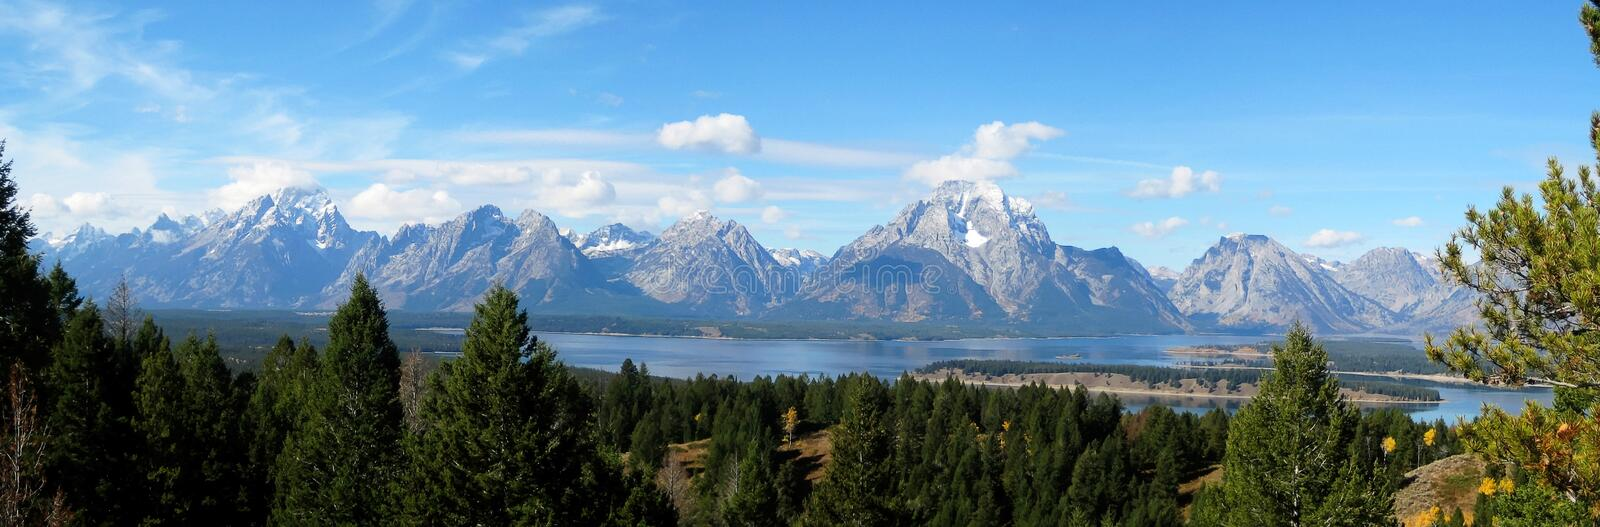 Teton range panorama (Wyoming, USA) stock photo